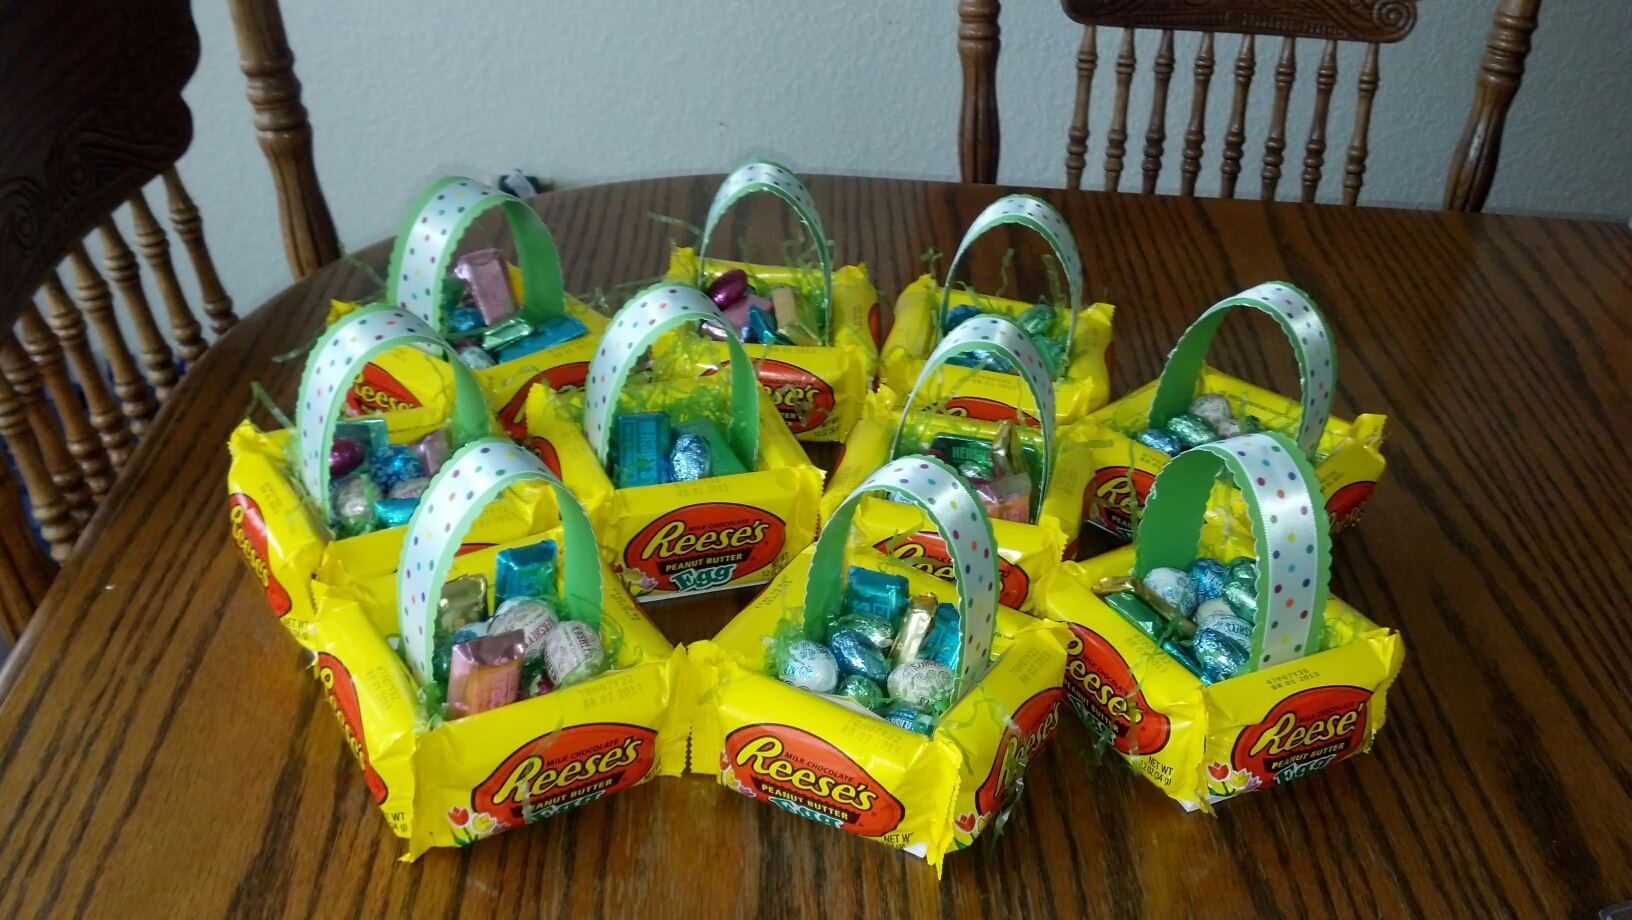 Aydons edible easter baskets for his class snacks pinterest aydons edible easter baskets for his class negle Gallery